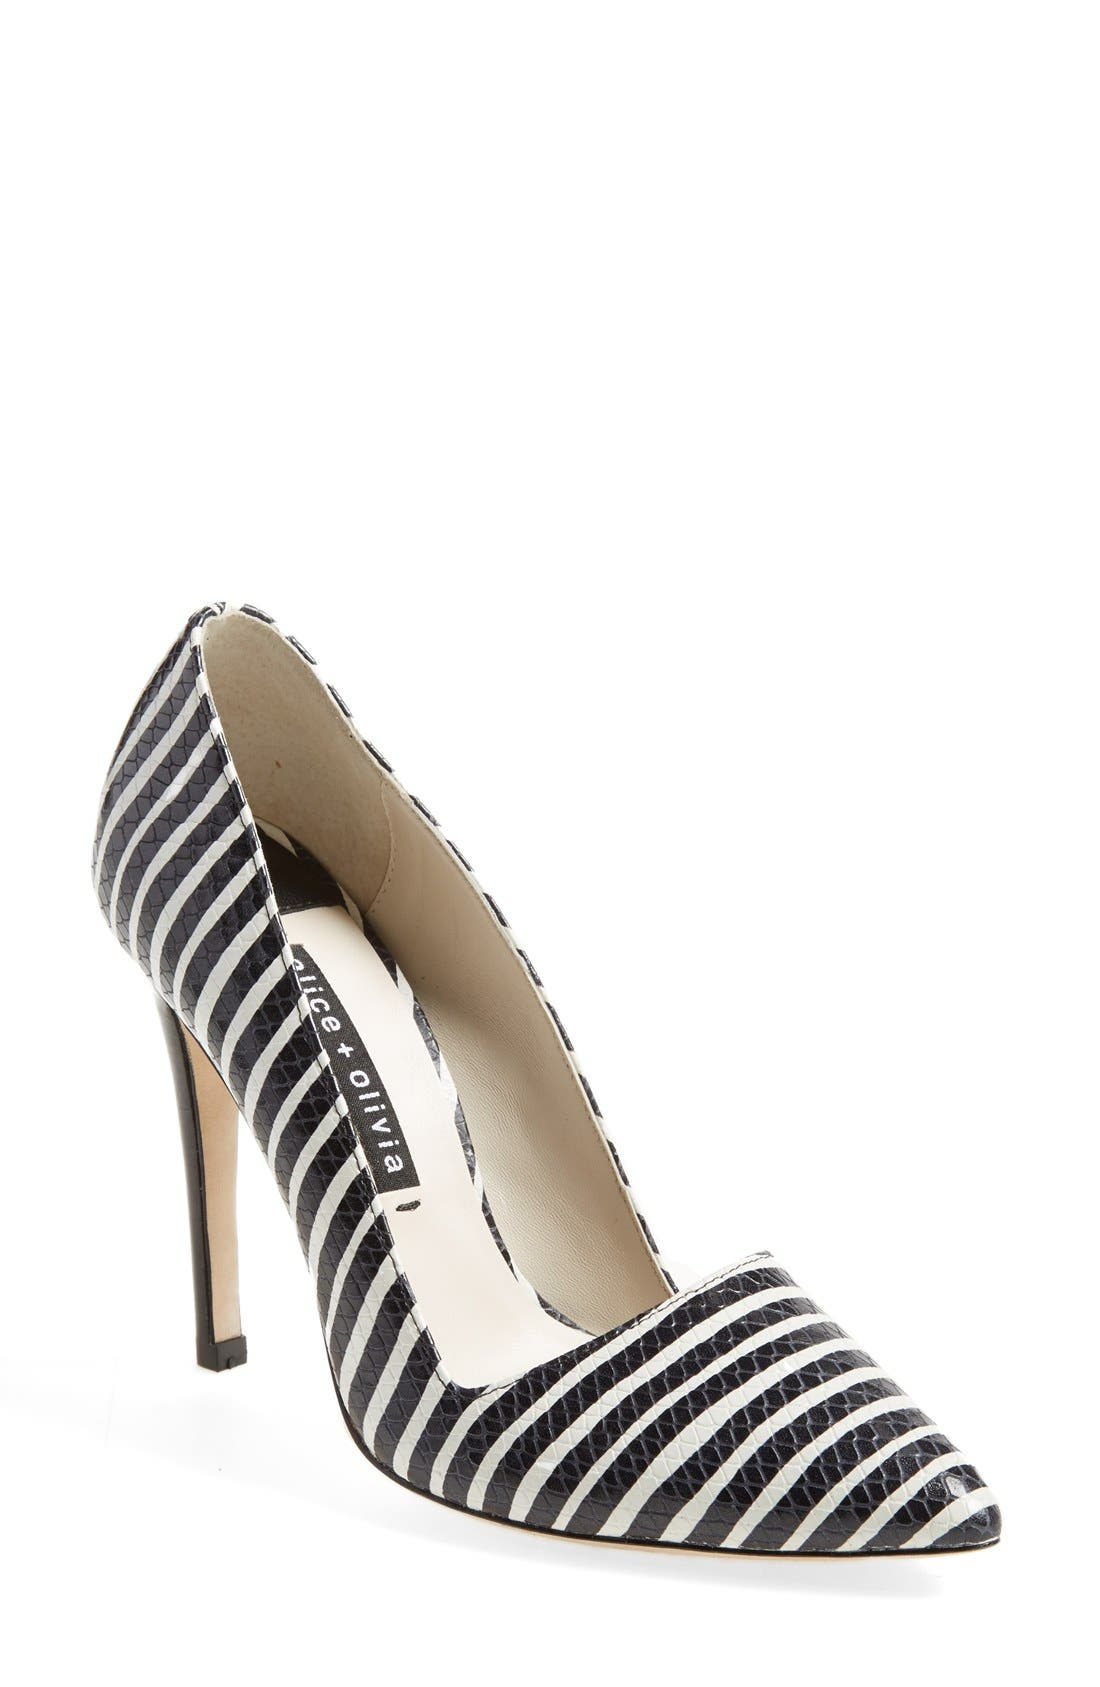 Alternate Image 1 Selected - Alice + Olivia 'Dina' Pointy Toe Pump (Women)